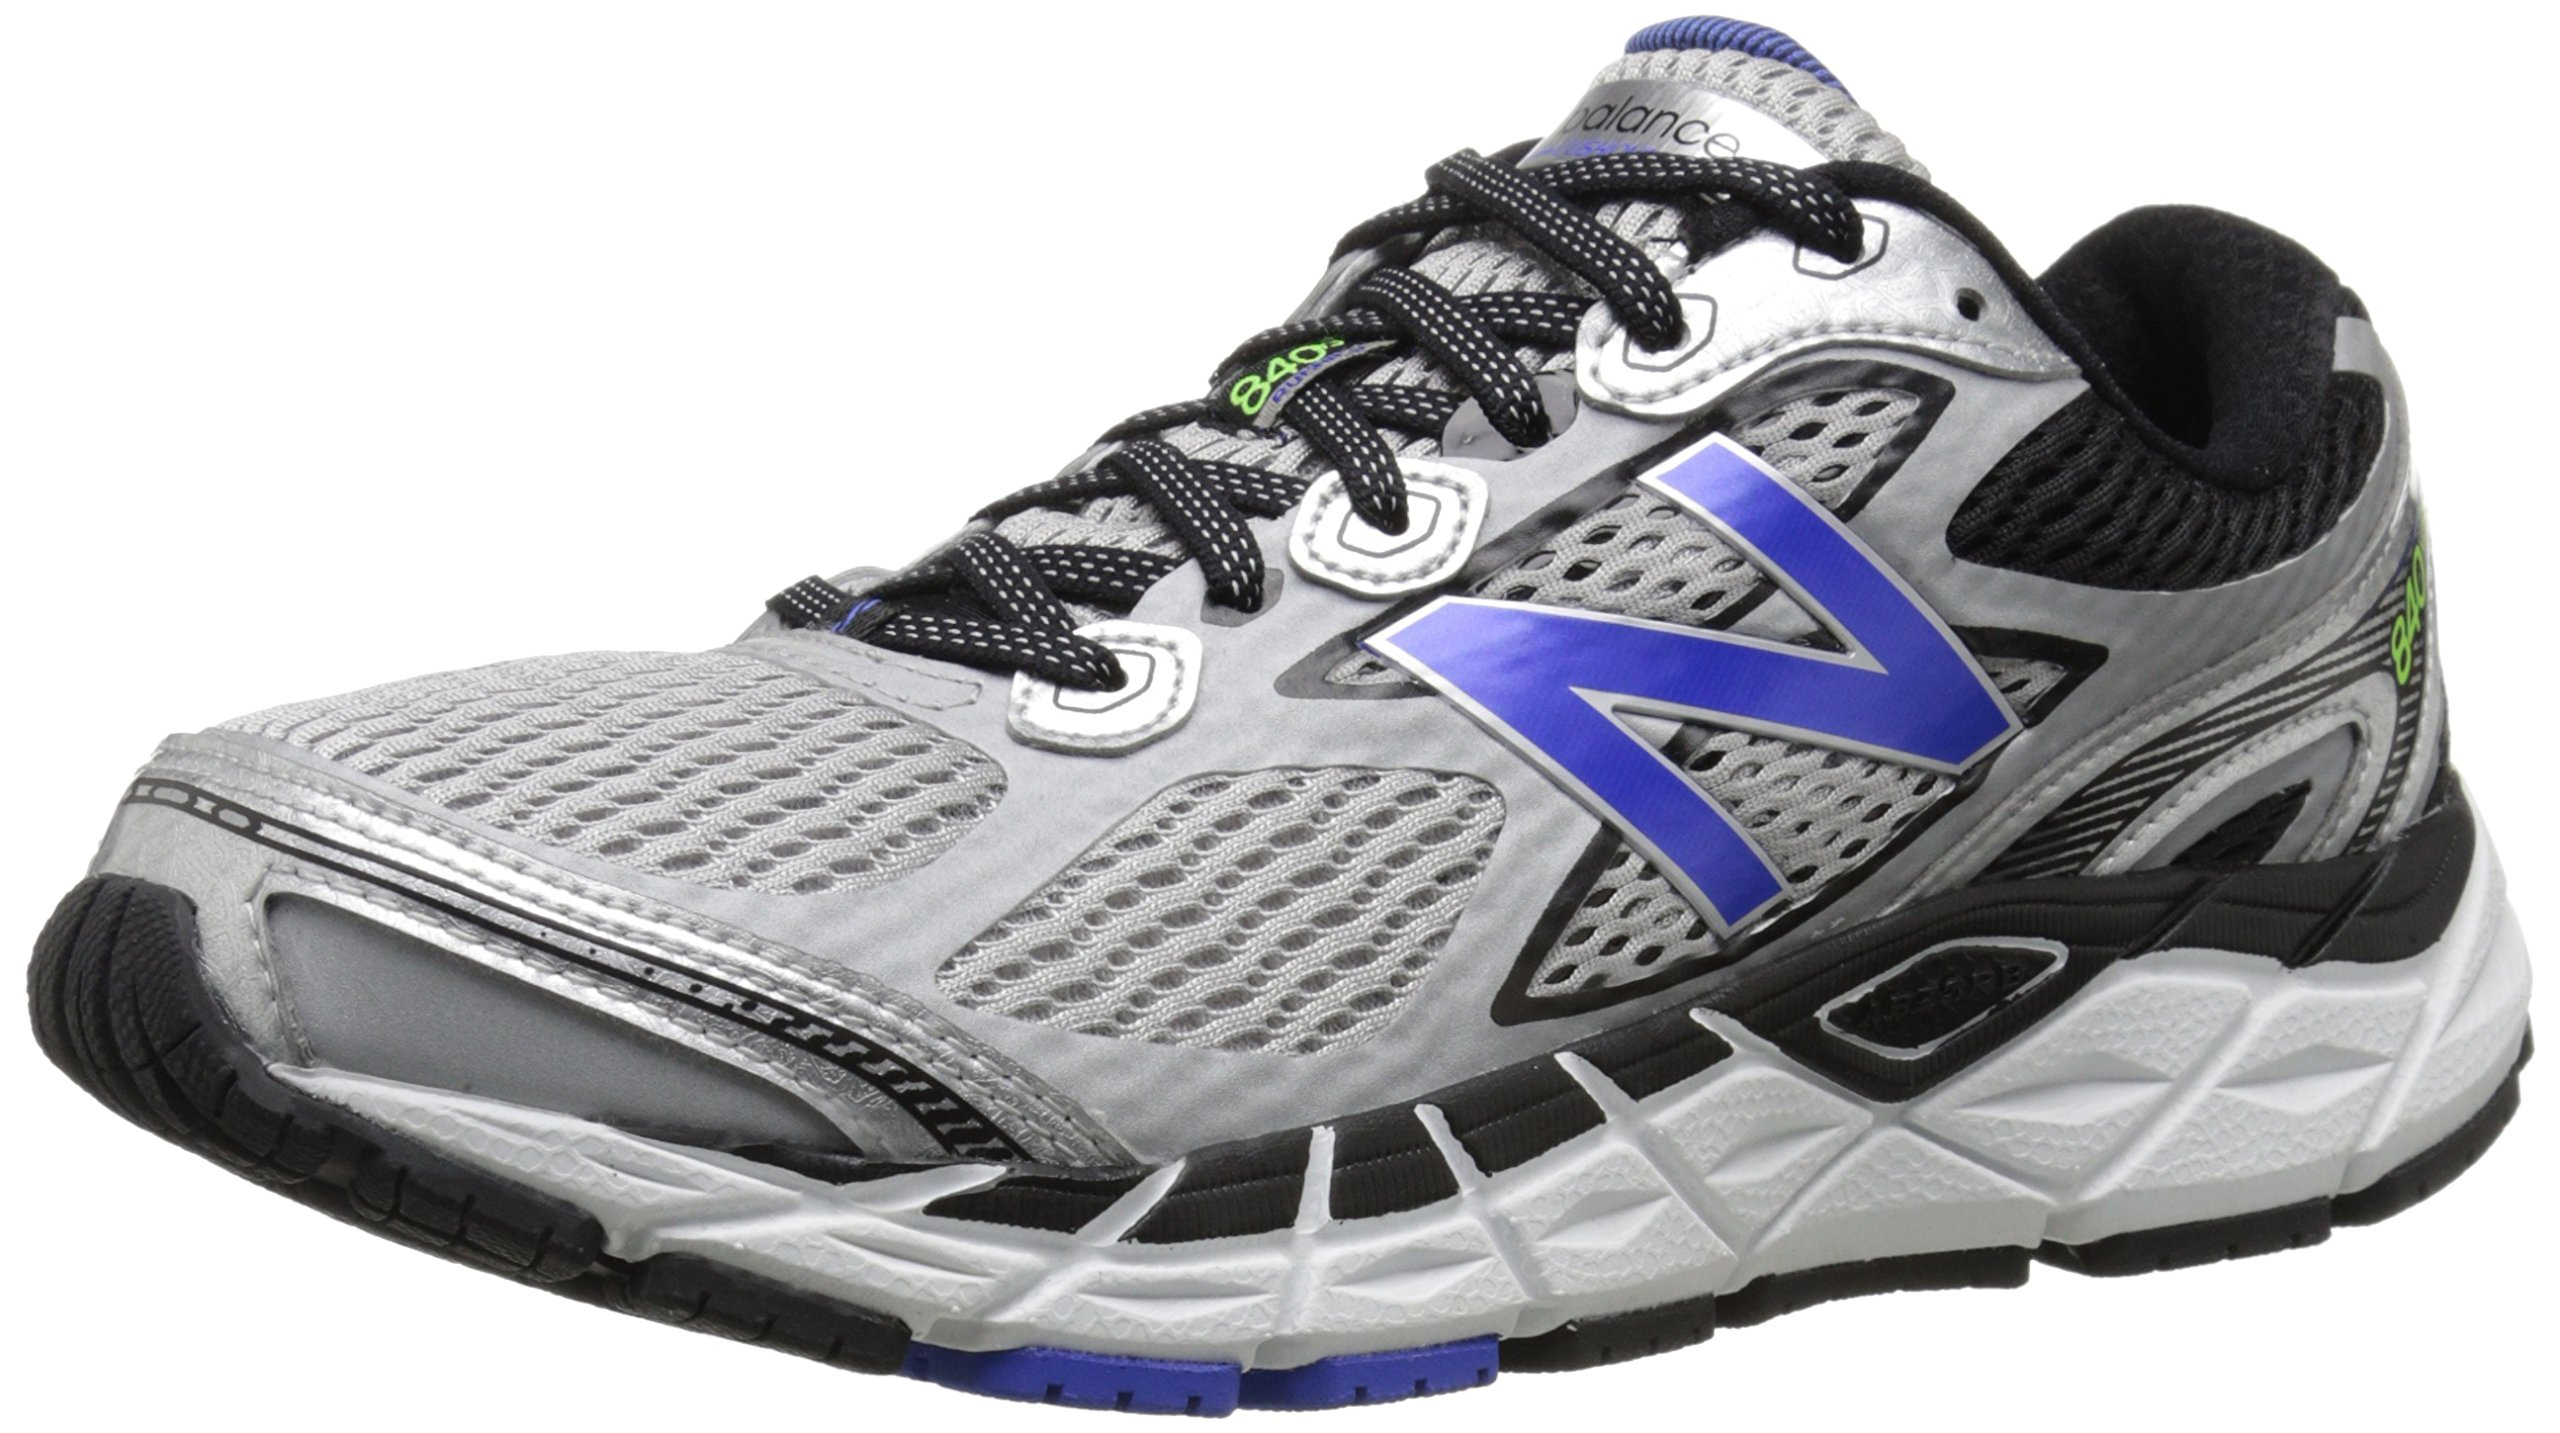 New Balance Men's M840V3 Run Shoe-M, Silver/Blue, 14 4E US